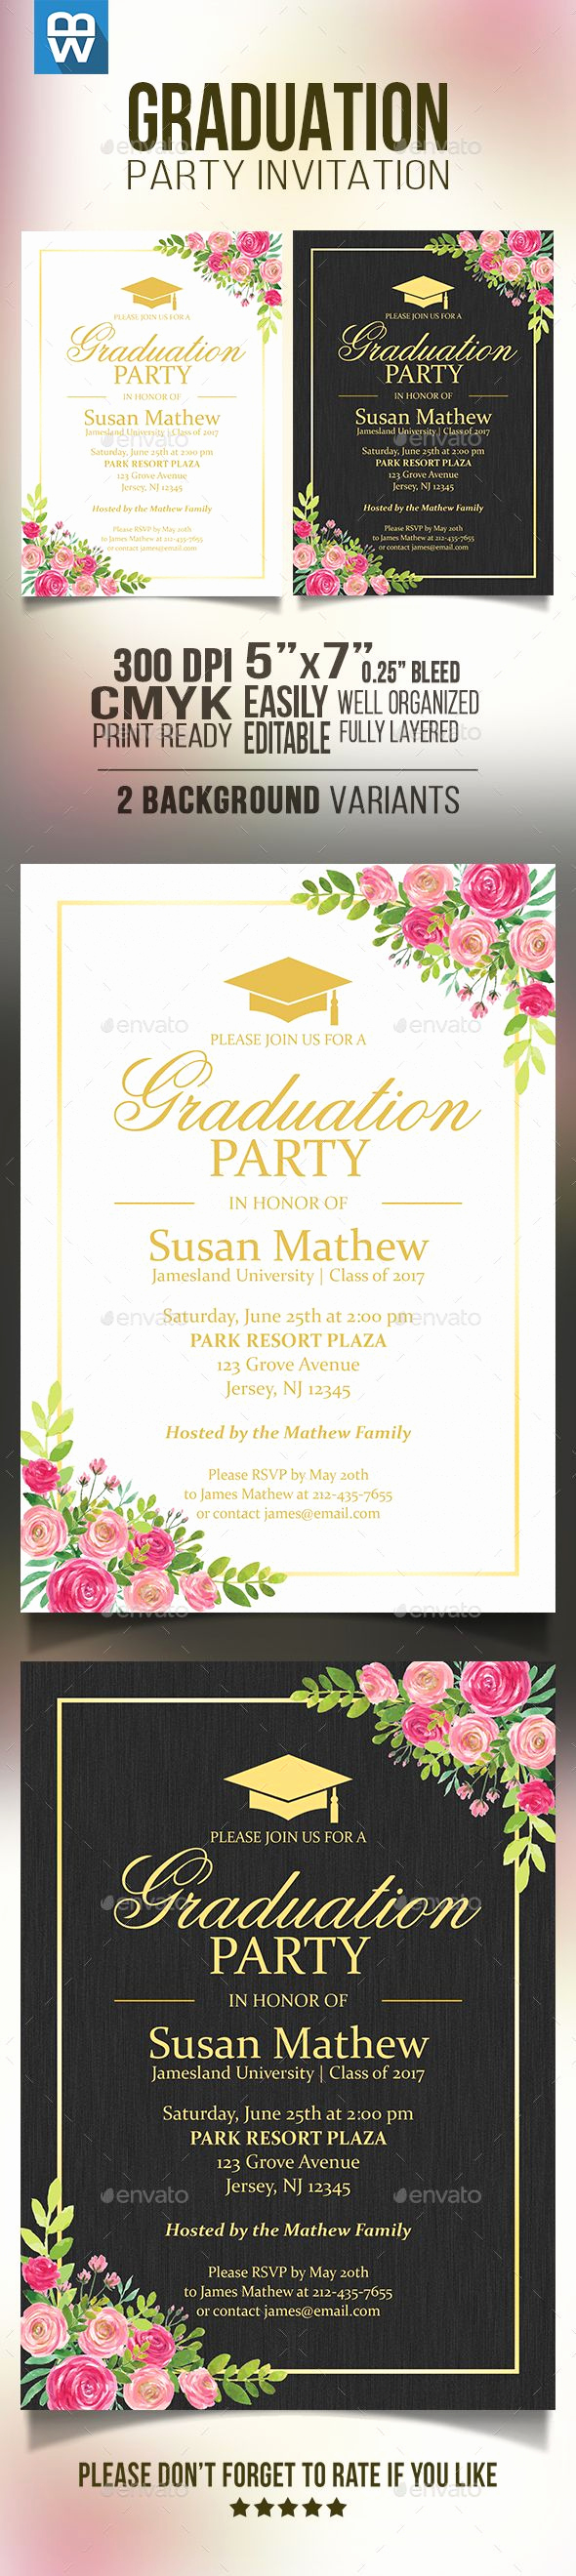 Printable Graduation Invitation Templates Inspirational 25 Unique Invitation Templates Ideas On Pinterest